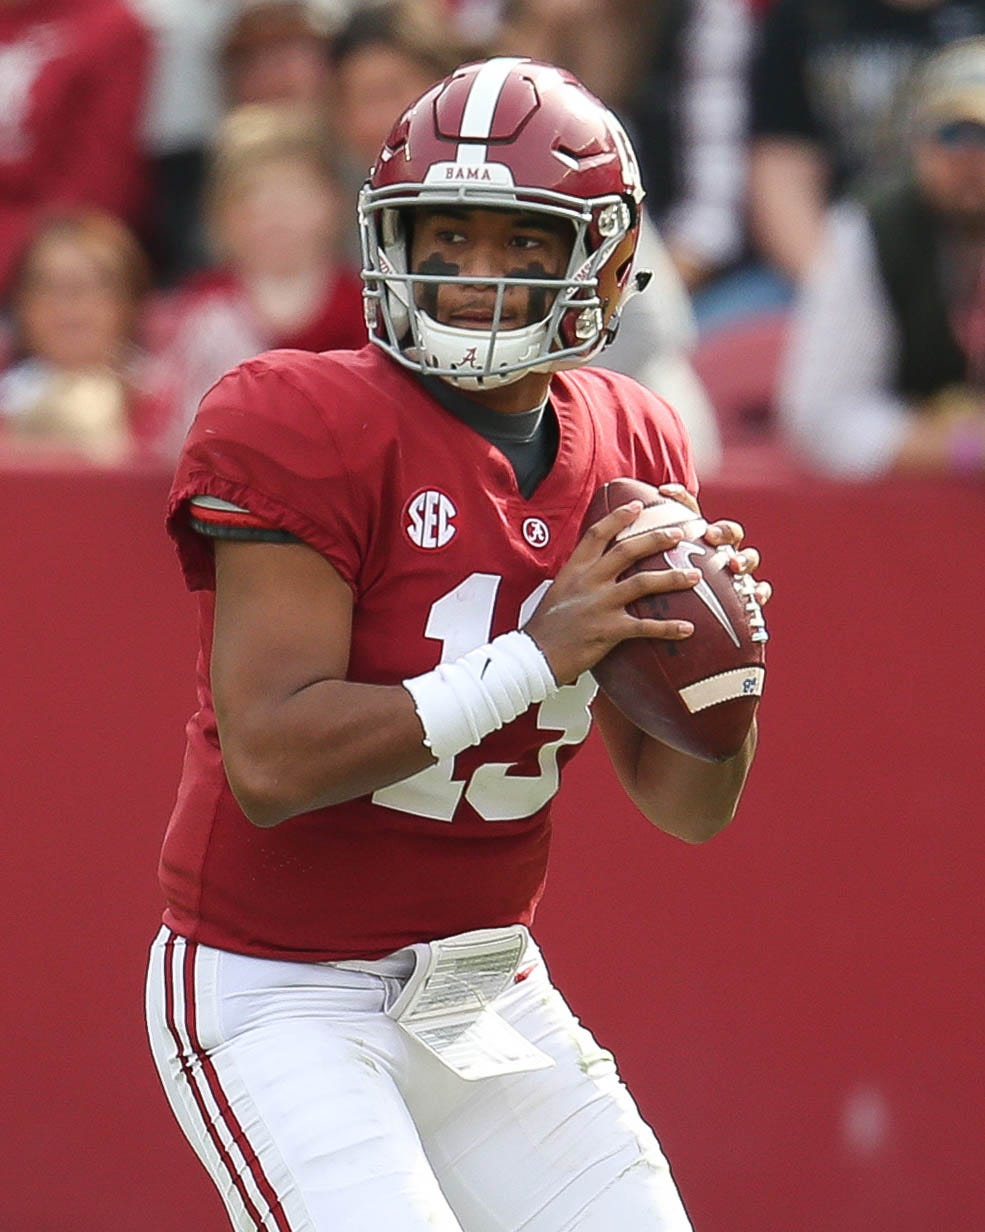 Tua Tagovailoa and Alabama will attempt to repeat as national champions.